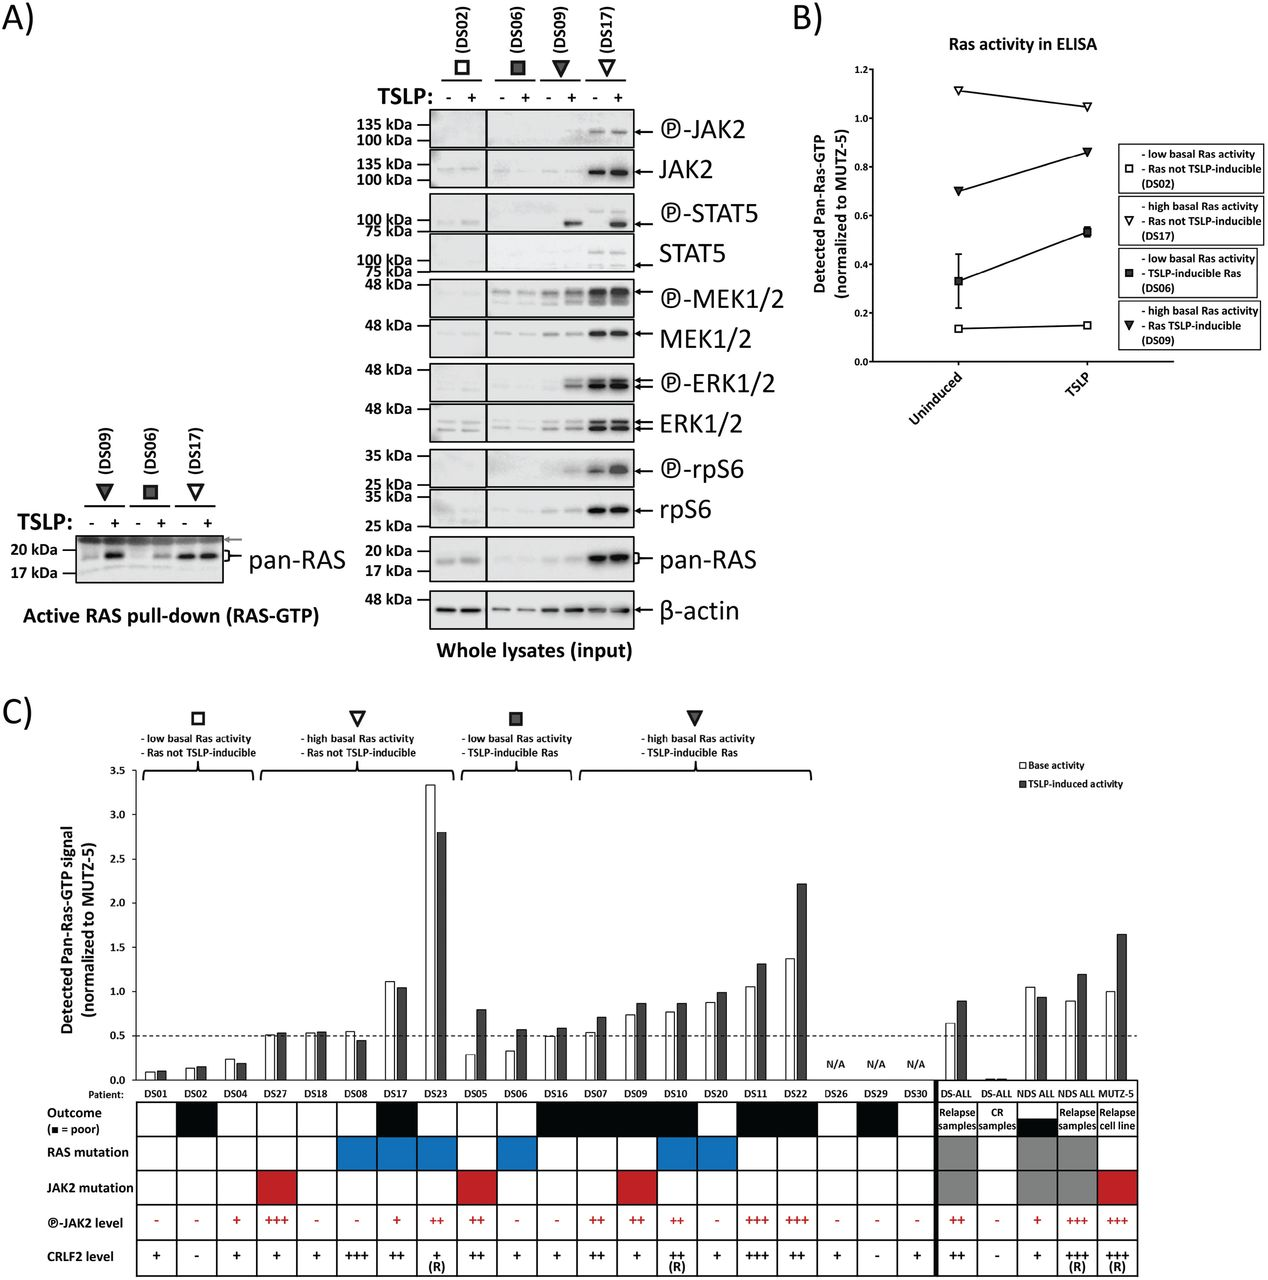 70% of primary bone marrow presentation samples of Down syndrome ALL patients show activated and/or TSLP-inducible RAS, regardless of mutations status. Primary presentation samples of DS-ALL patients were cultured for 2 days (see Supplementary-Fig.S4A legend for details) and then induced for 10 min with 20 ng/mL TSLP (or not induced) in serum-reduced medium. Lysates were analyzed for RAS activity in WB pull-down (A) or ELISA (B) using an ELISA-specific RAS pull-down assay. (A) Each lysate was split up for analysis in Western blot RAS-GTP pull-down assay and for total protein signal. RAS-GTP pull-down (left) and lysate samples (right) were loaded on separate gels. An SDS-PAGE followed by Western blotting was performed. To assess the total protein and phosphorylated protein amounts on the same PVDF-membrane, membranes were stripped and reprobed with new antibodies. Antibody-targets are labeled on the right side of each image with black arrows indicating the respective protein band; the grey arrow shows the loading of the GST-RBD in the pull-down assay. (B) The RAS activity pattern in the patient samples from (A) was confirmed via ELISA measurement of RAS-activity in aliquots that were independently thawed and processed as described above The line graph illustrates the four main patterns observed for RAS activity in primary ALL patient samples. (C) Shows an overview of the ELISA-measured RAS activity for the DS-ALL cohort at diagnosis (not enough cell material was available for DS26, DS29 and DS30). The RAS-GTP pull-down for ELISA was performed on lysates from cells at minimum 75% viability at a 100 ng/μL total protein concentration. In parallel, uninduced MUTZ-5 cells were subjected to the same treatment as the primary patient cells and were used to normalize all RAS activities. Brackets on top indicate the groups of the four RAS activity patterns presented in (A, B). For visualization purposes only in this graph, basal RAS activity over 50% of MUTZ-5 basal RAS activi